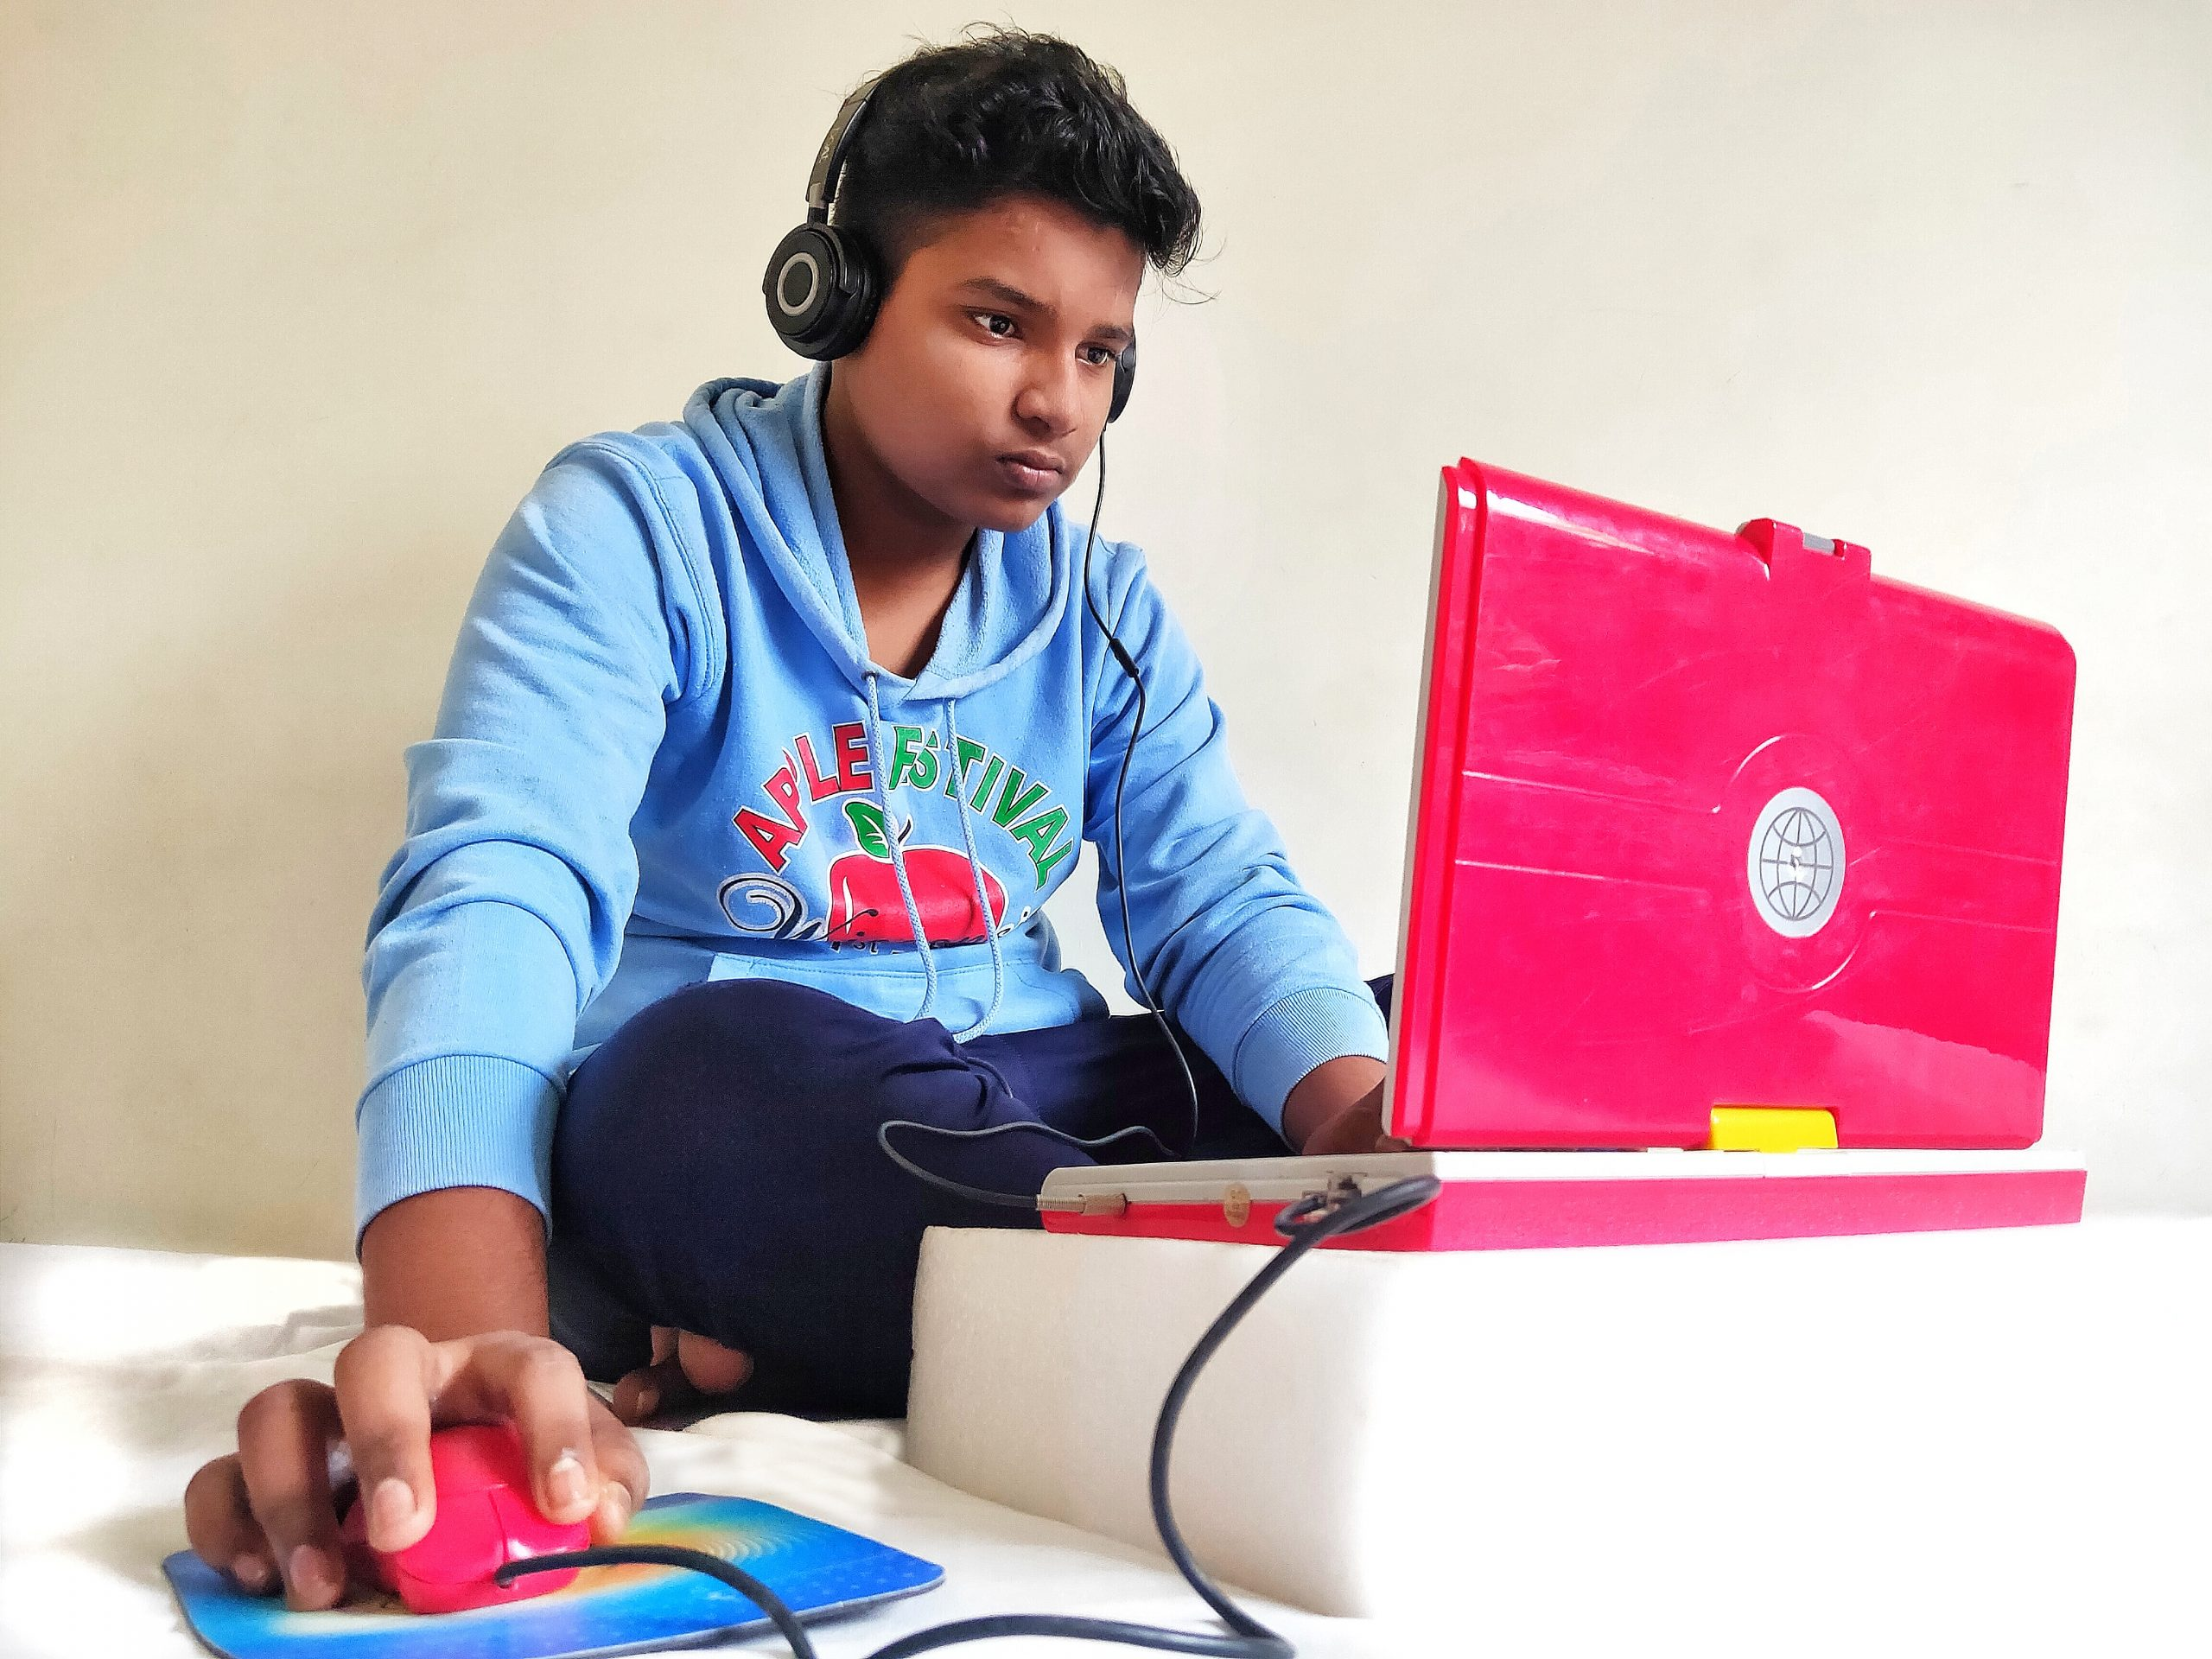 boy using laptop and headphones